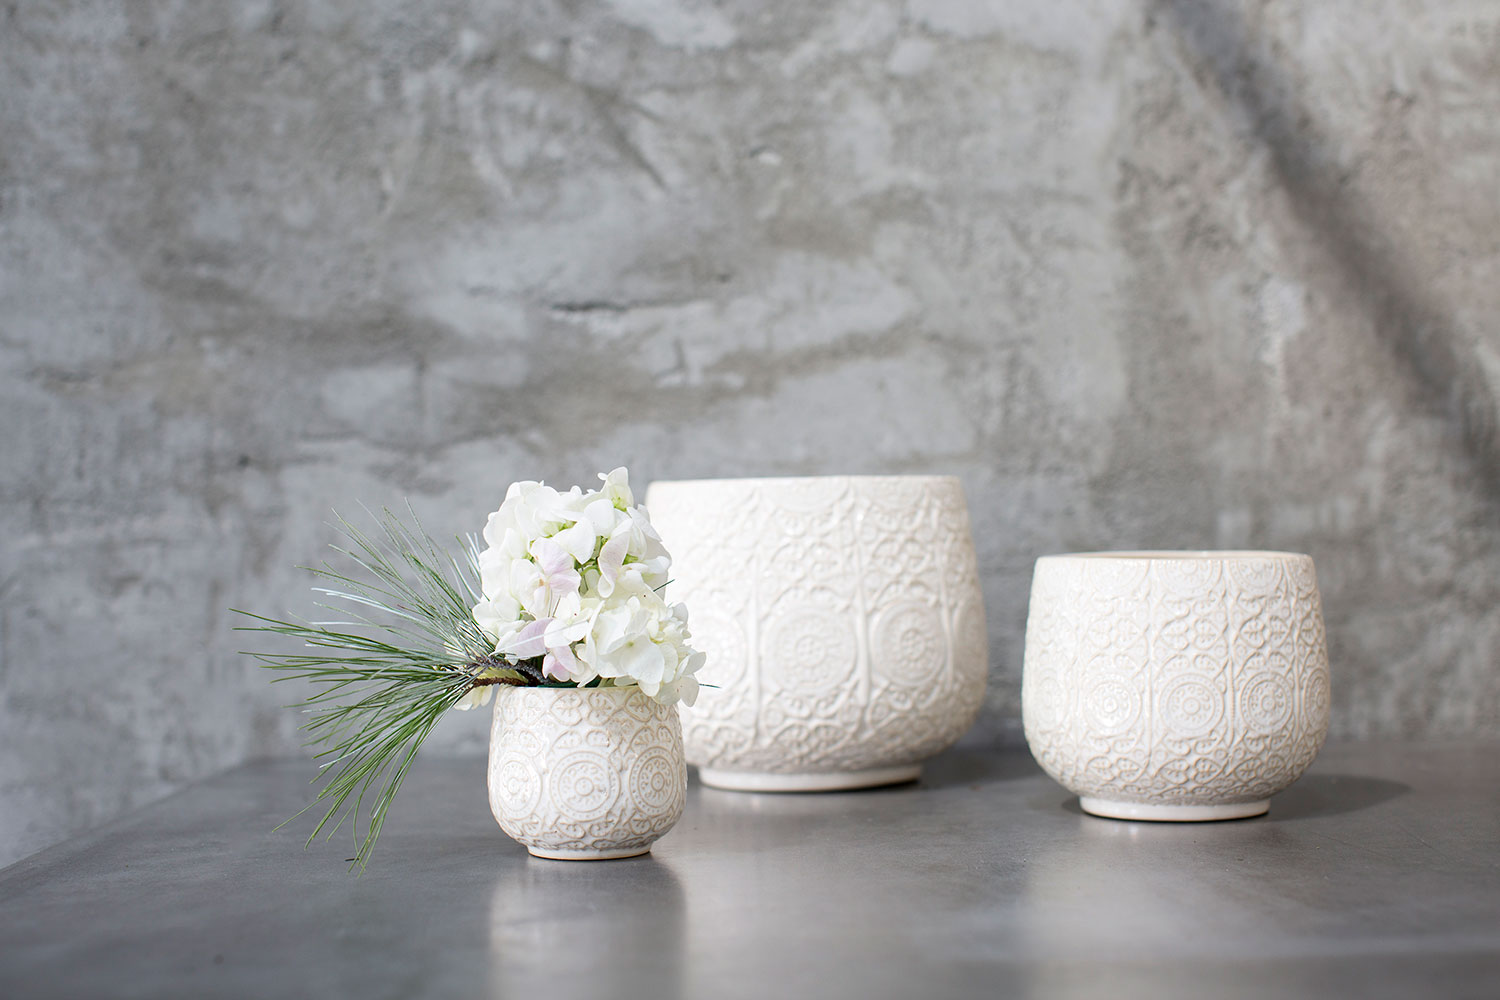 Francis Pot - This ceramic vase has a subtle imprinted design. Perfect for drop in pots or centerpiece design.